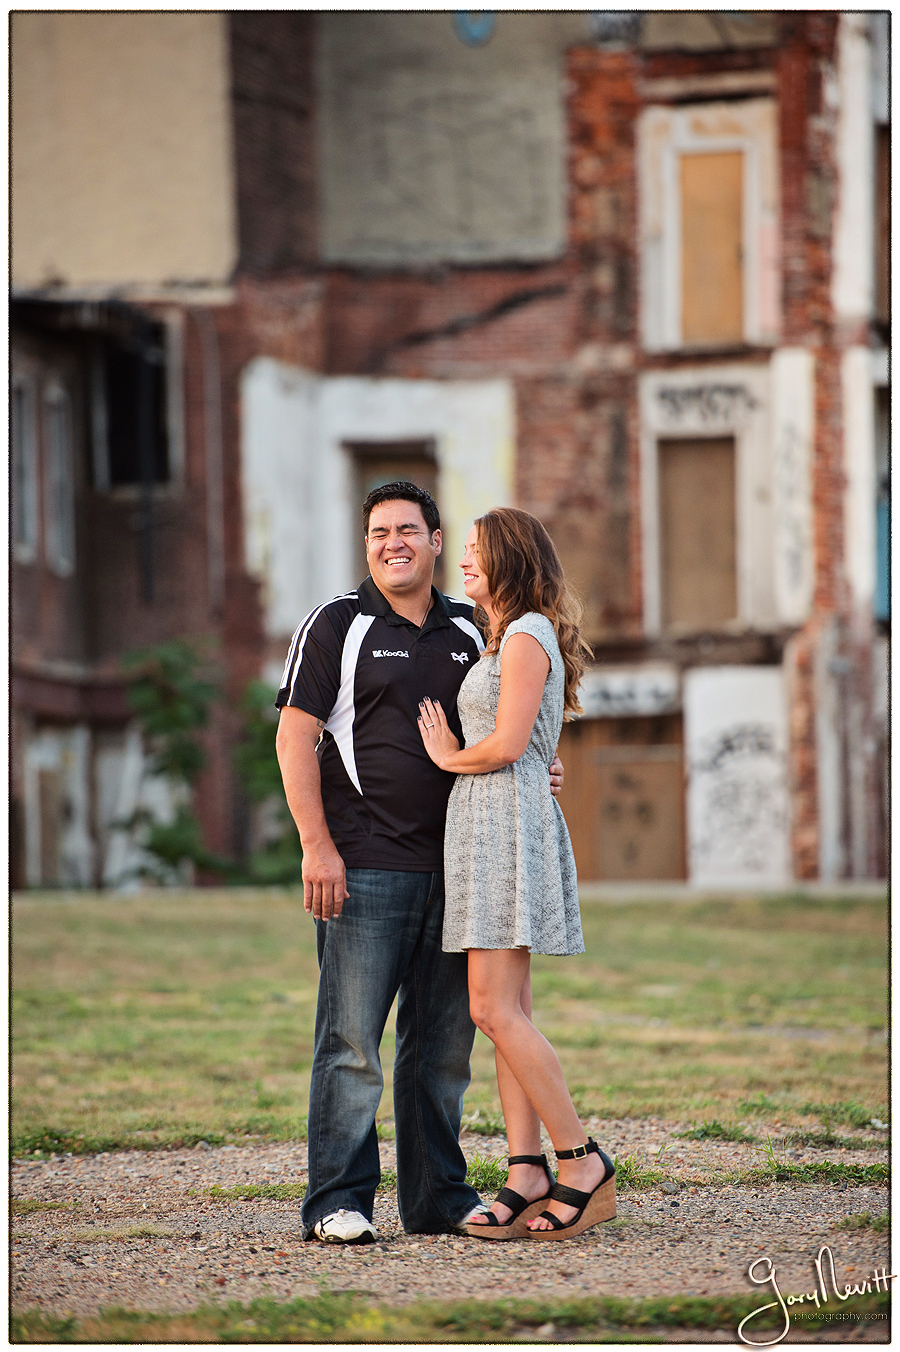 Ryan-Engagement-Photography-Philadelphia-Gary Nevitt Photogrpahy-1116